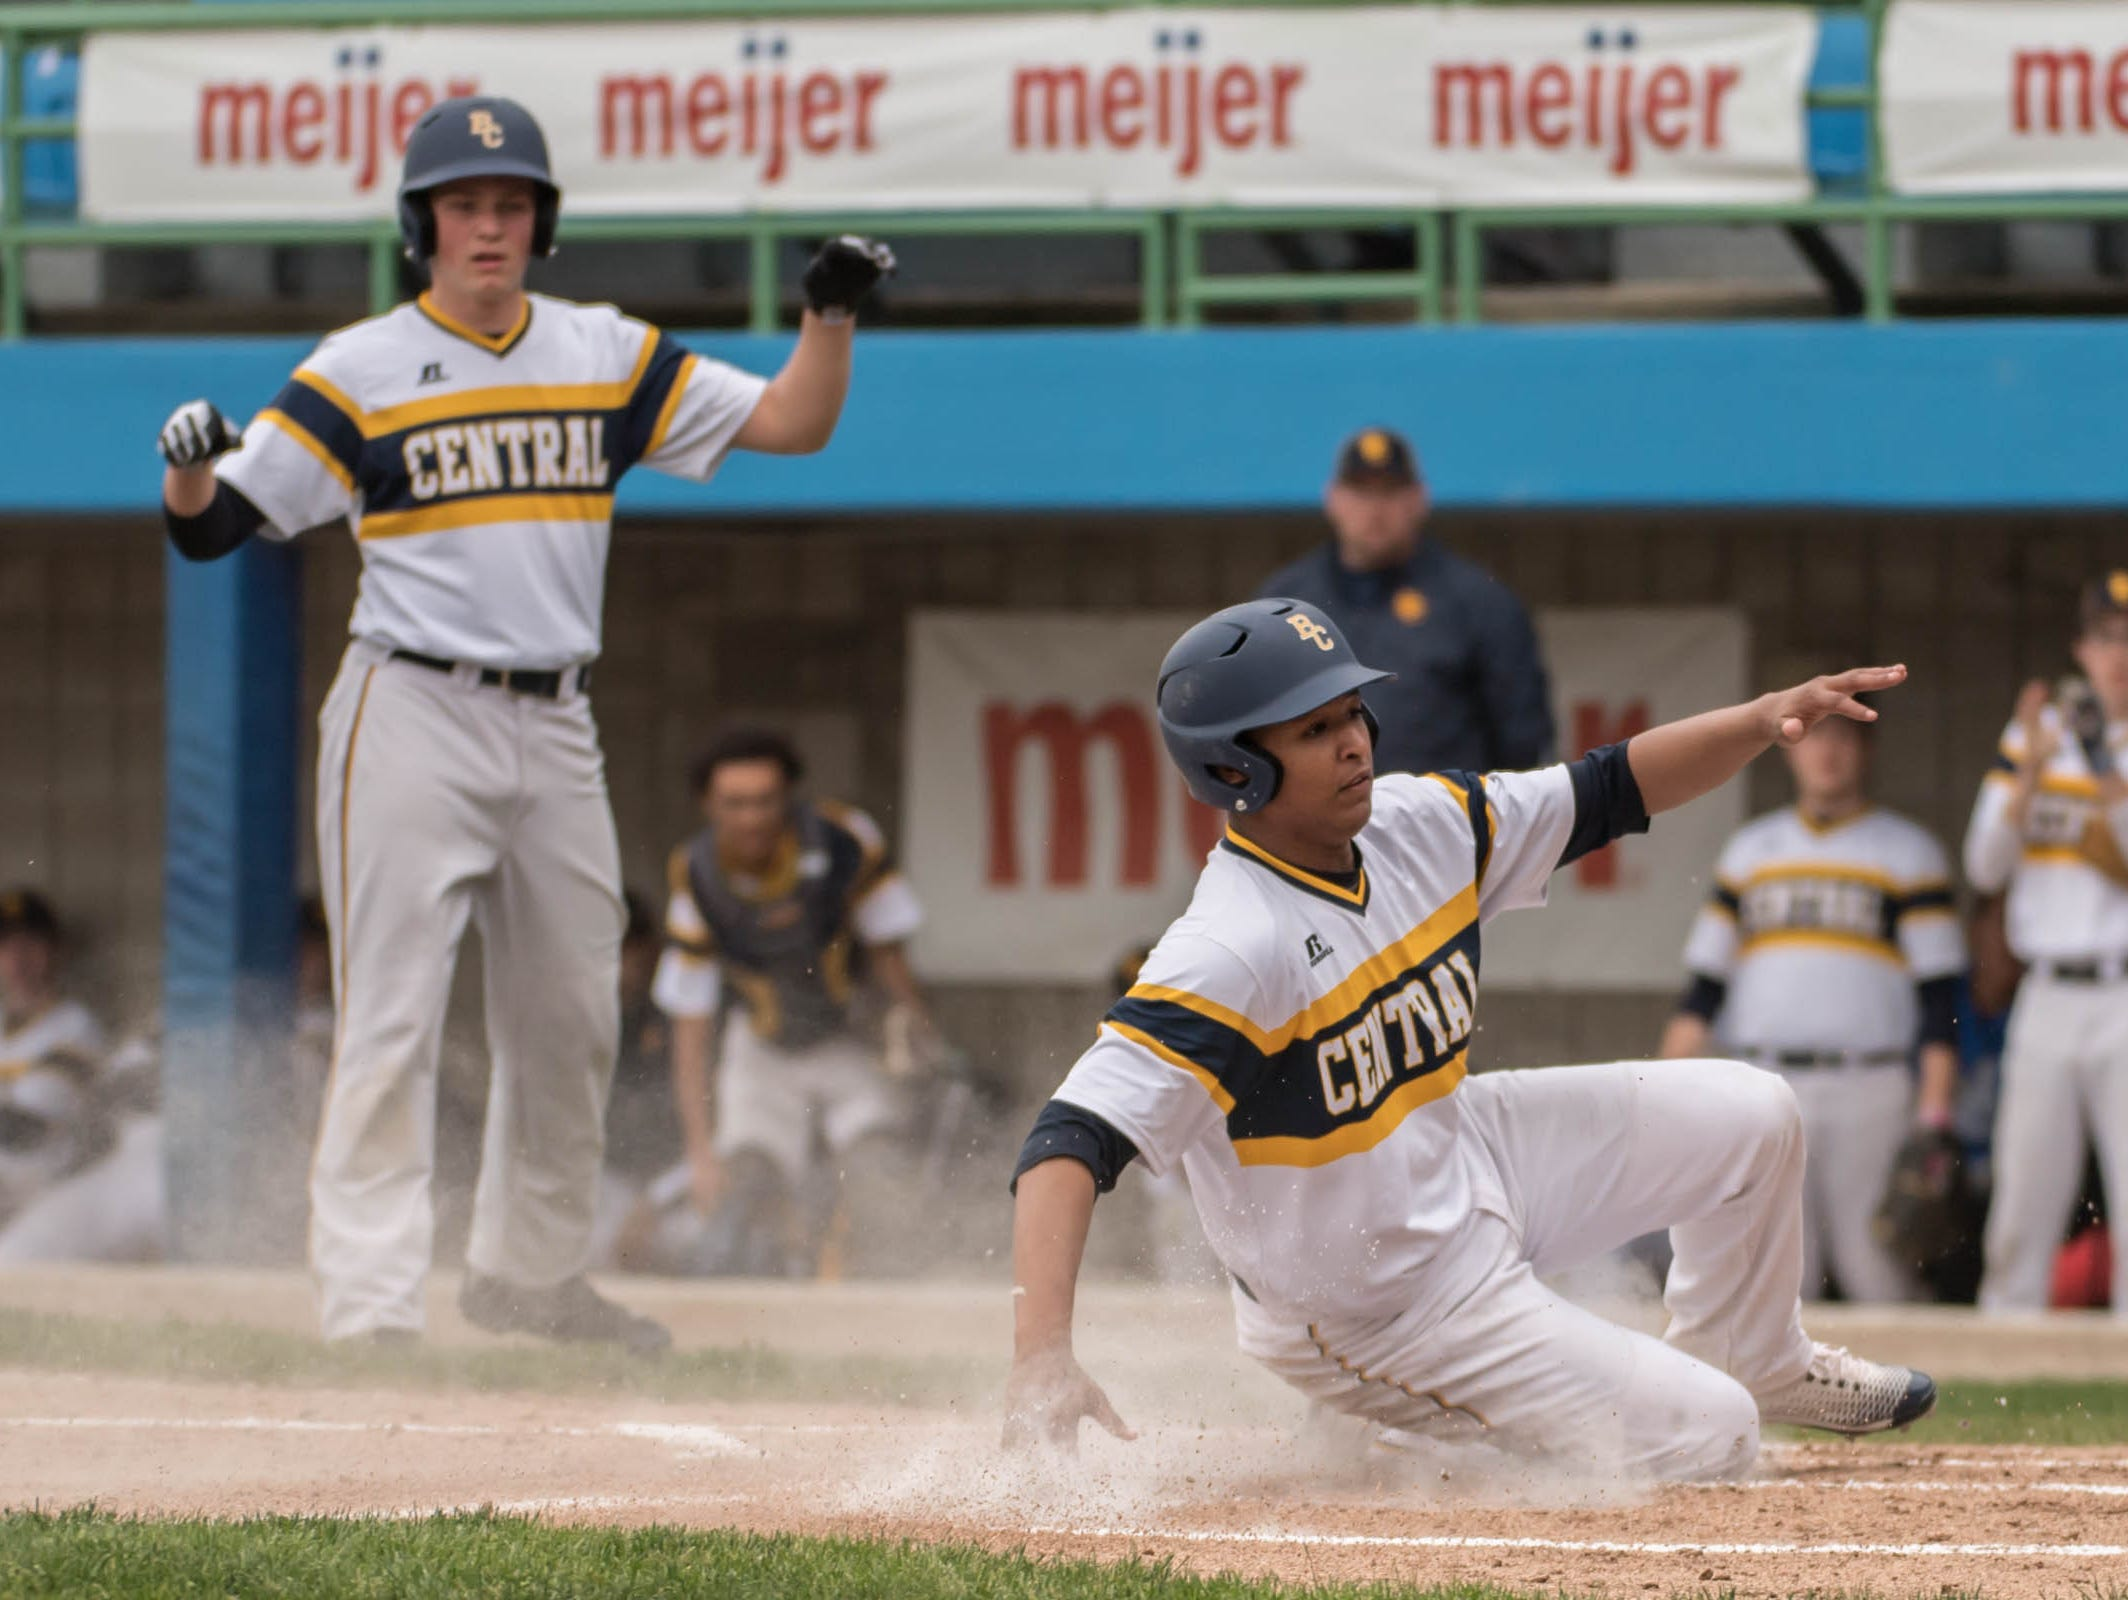 Battle Creek Central's Jordan Lawson slides home as Riley Cramer cheers him on during the Annual Play 4 May tribute game in honor Tim May at C.O. Brown Stadium on Monday.